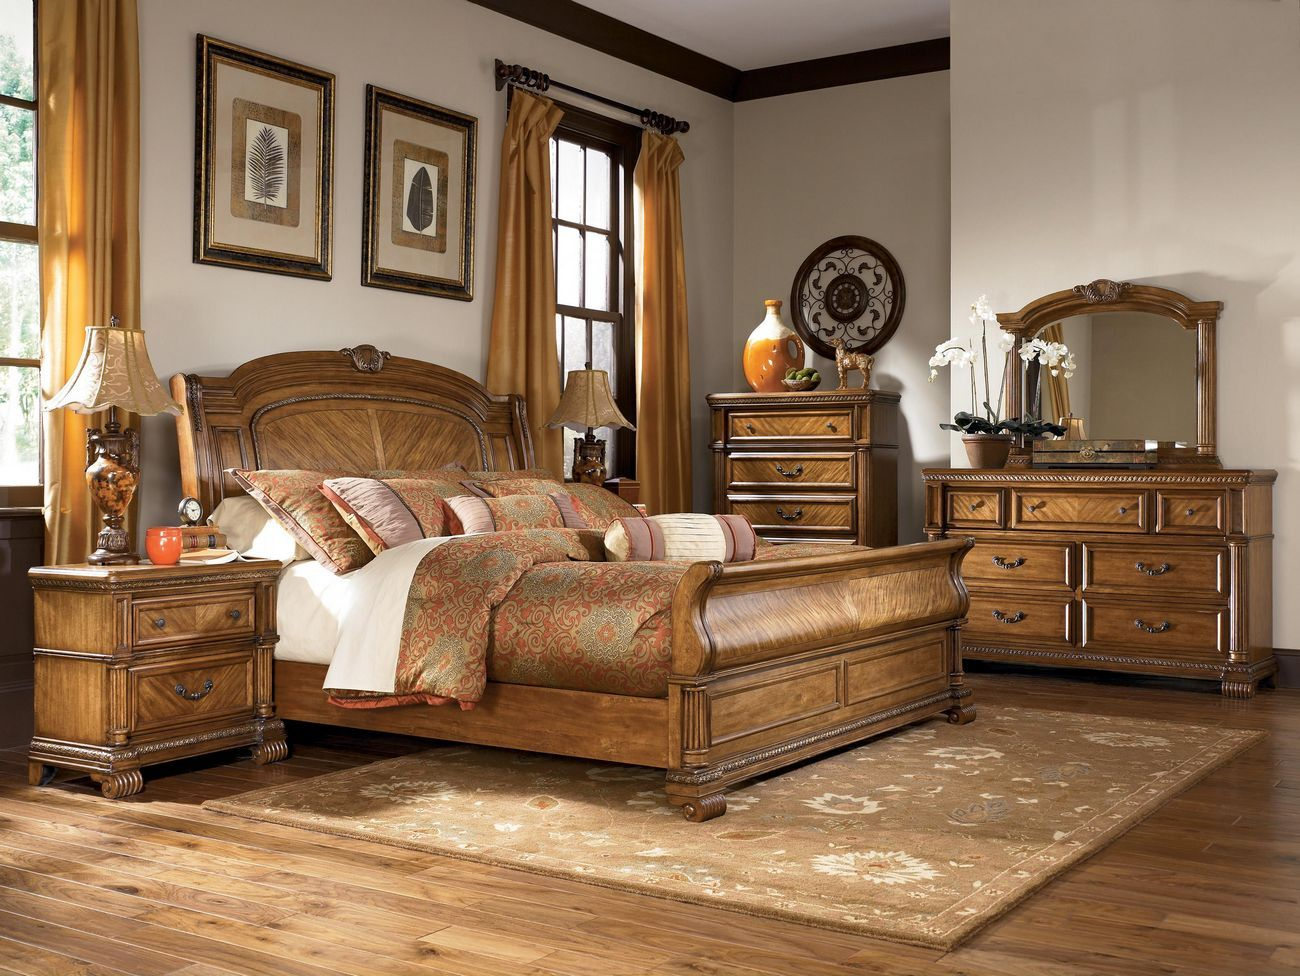 Ashley millennium clearwater b680 king sleigh bedroom - Ashley furniture bedroom packages ...